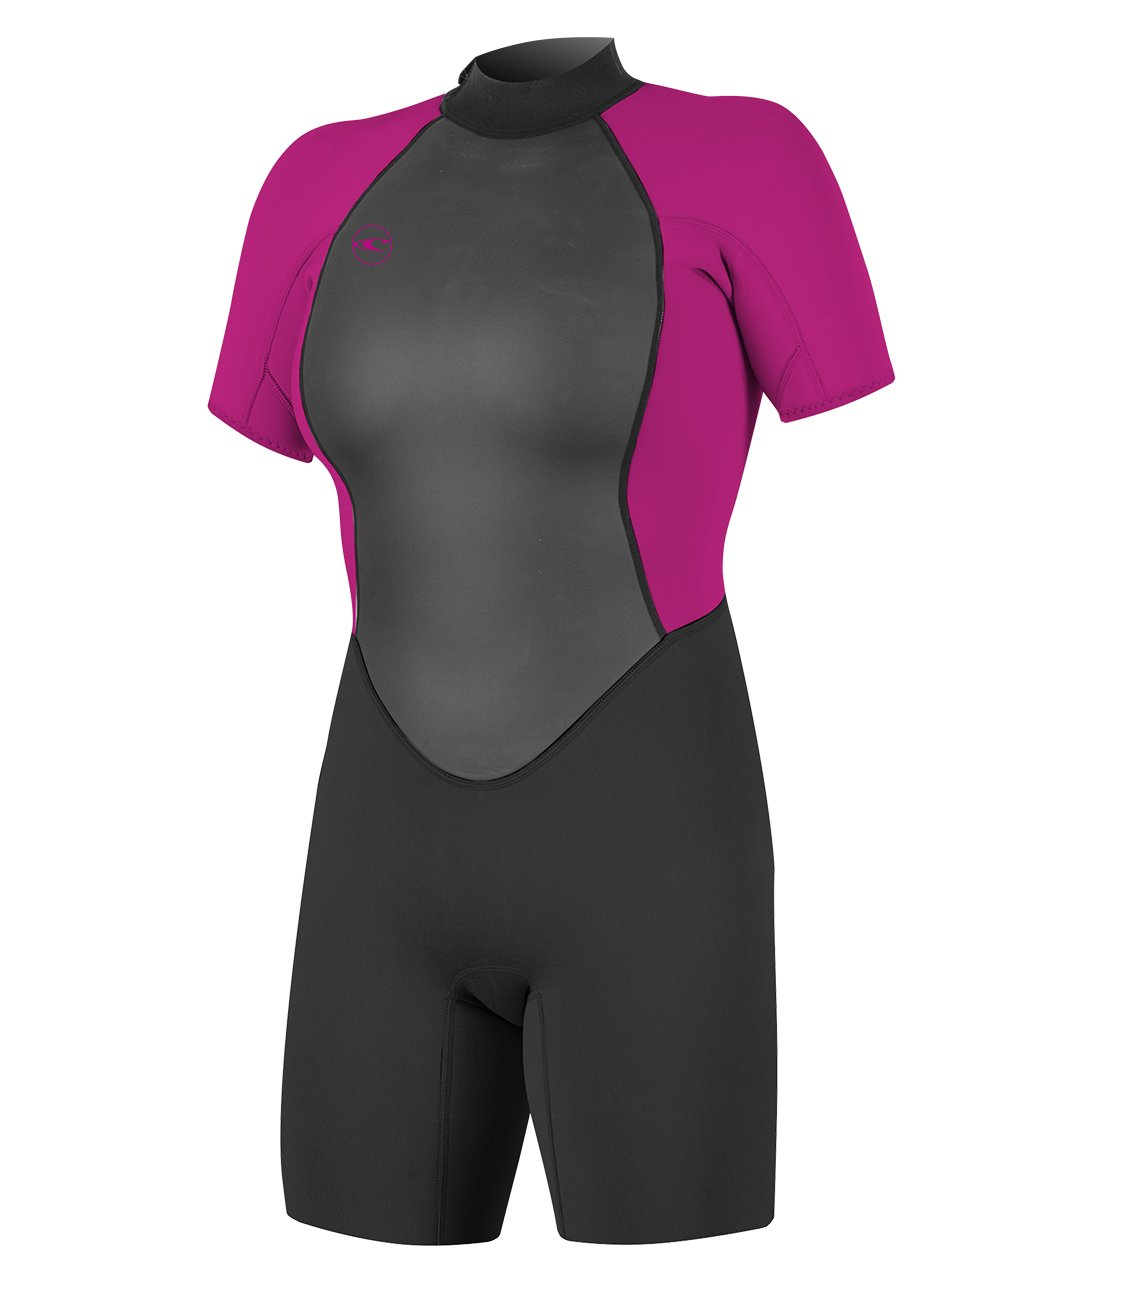 O'Neill Women's Reactor-2 2mm Back Zip Short Sleeve Spring Wetsuit, Black/Berry, 6 by O'Neill Wetsuits